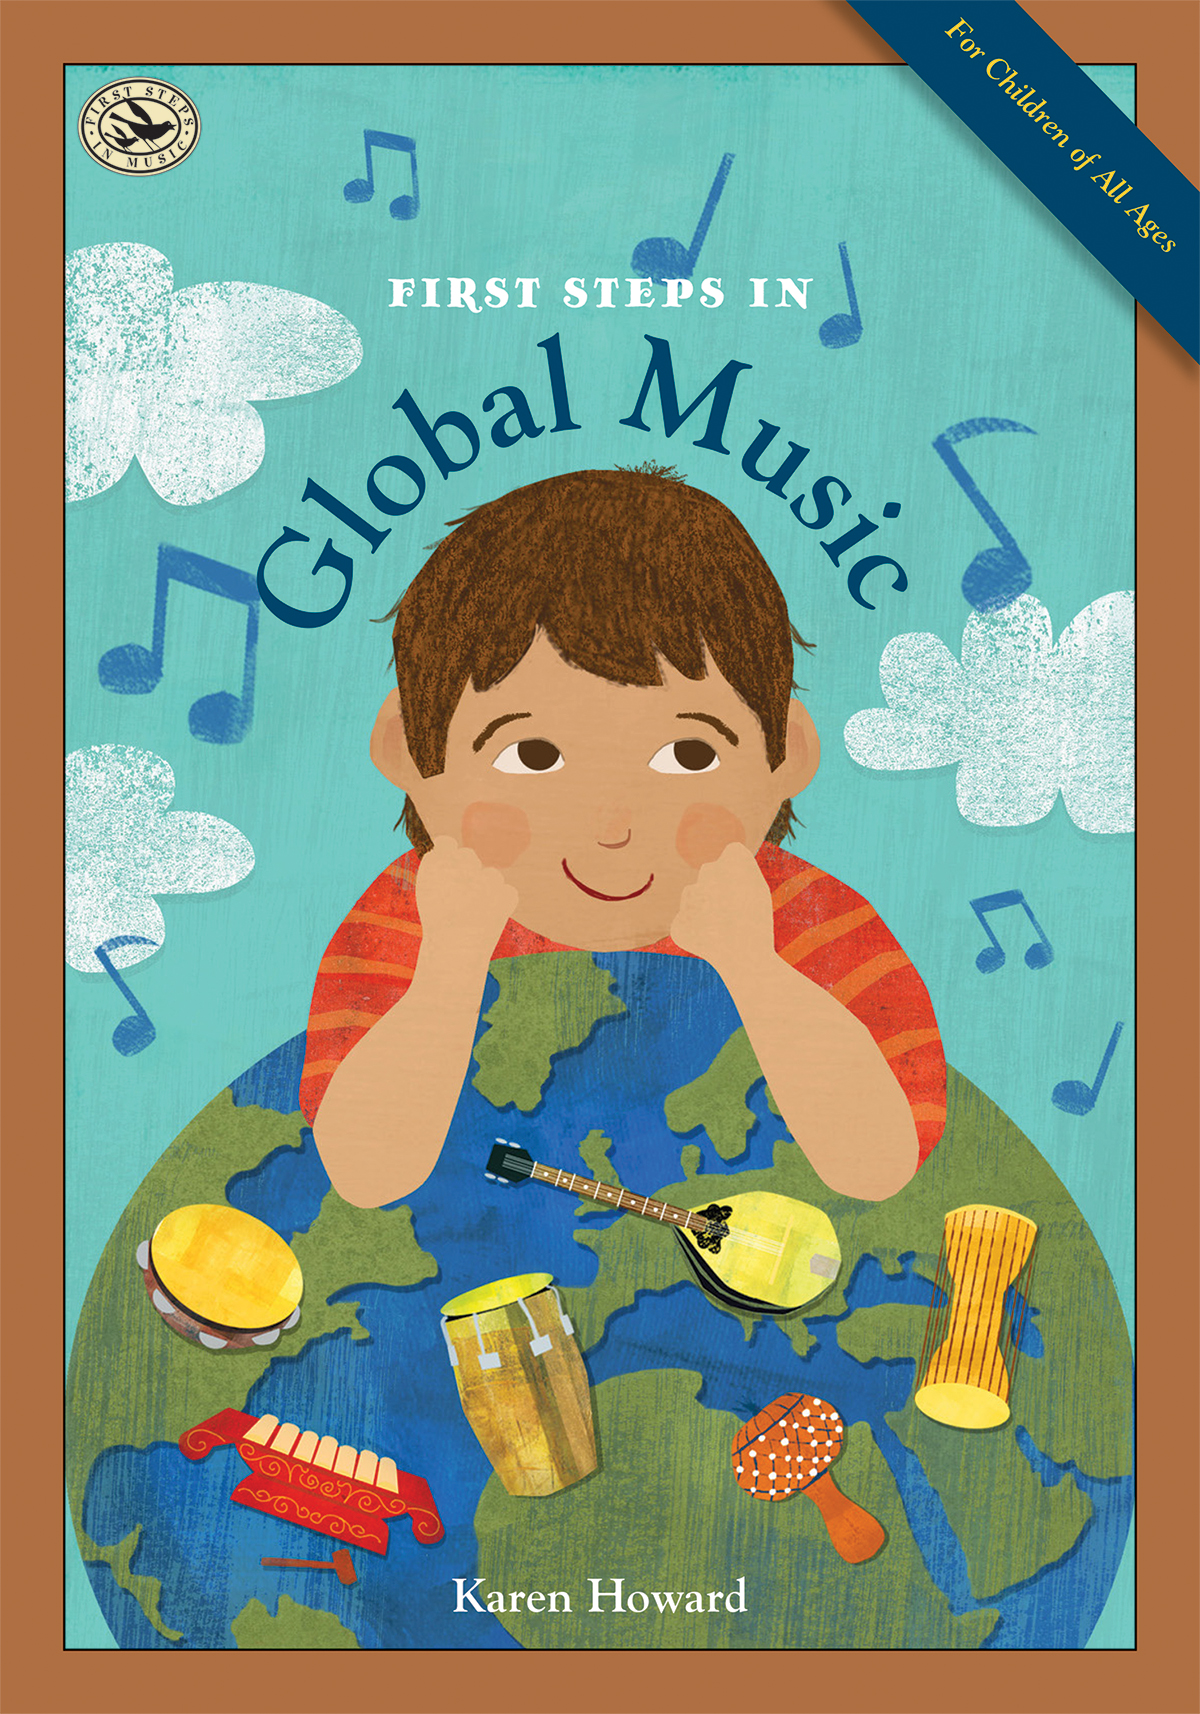 First Steps in Global Music